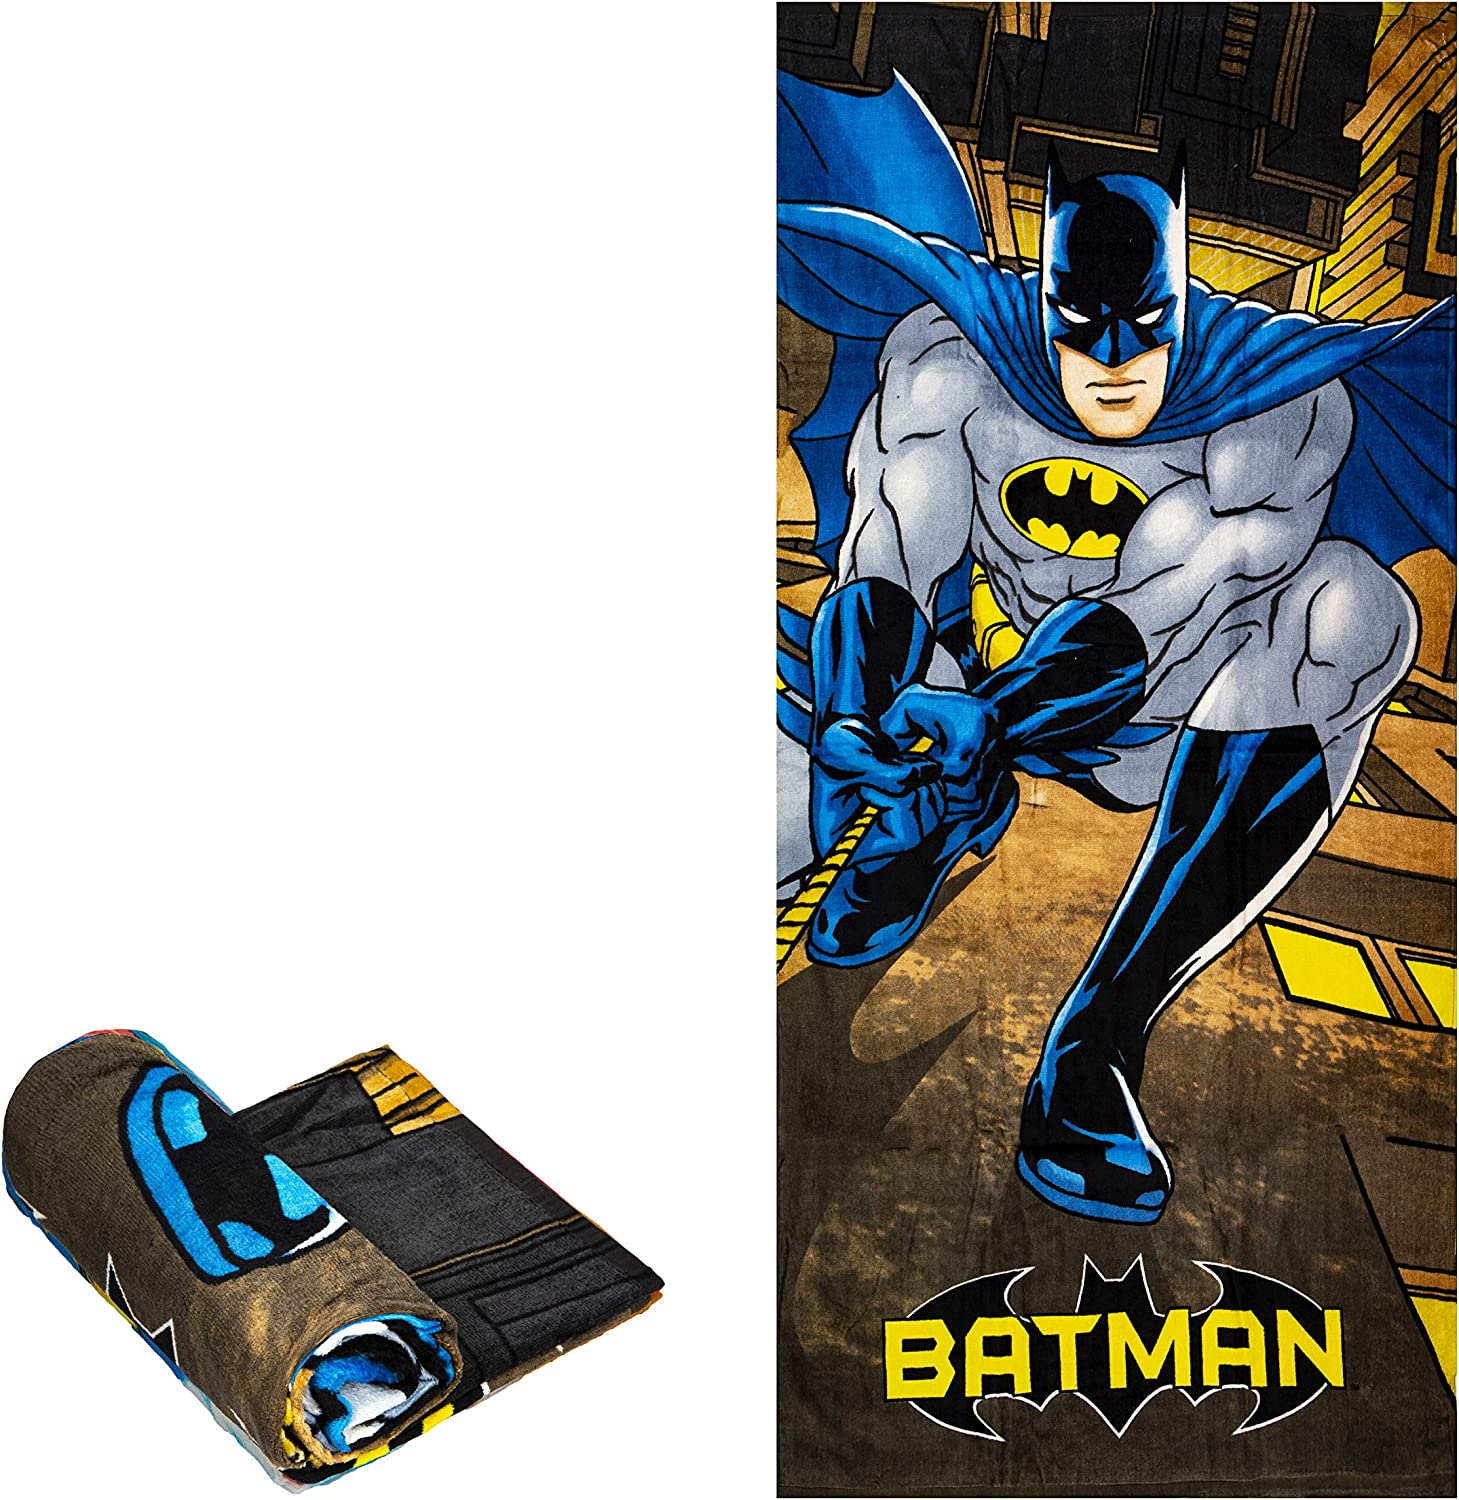 Beach Towel - Batman Climbing - Beach Towel Oversized 60